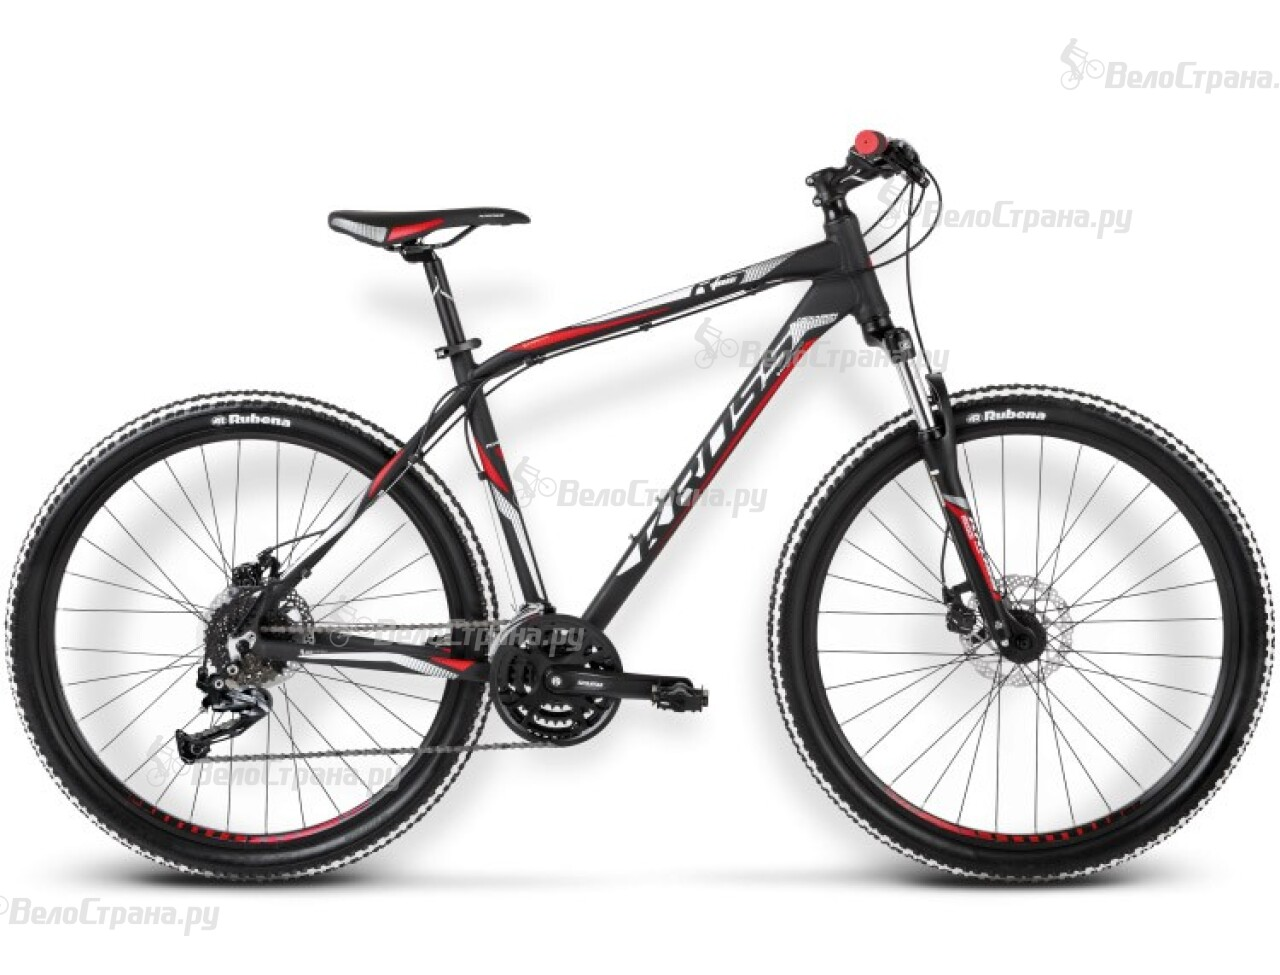 Велосипед Kross Hexagon R5 (2015) велосипед kross hexagon r4 2015